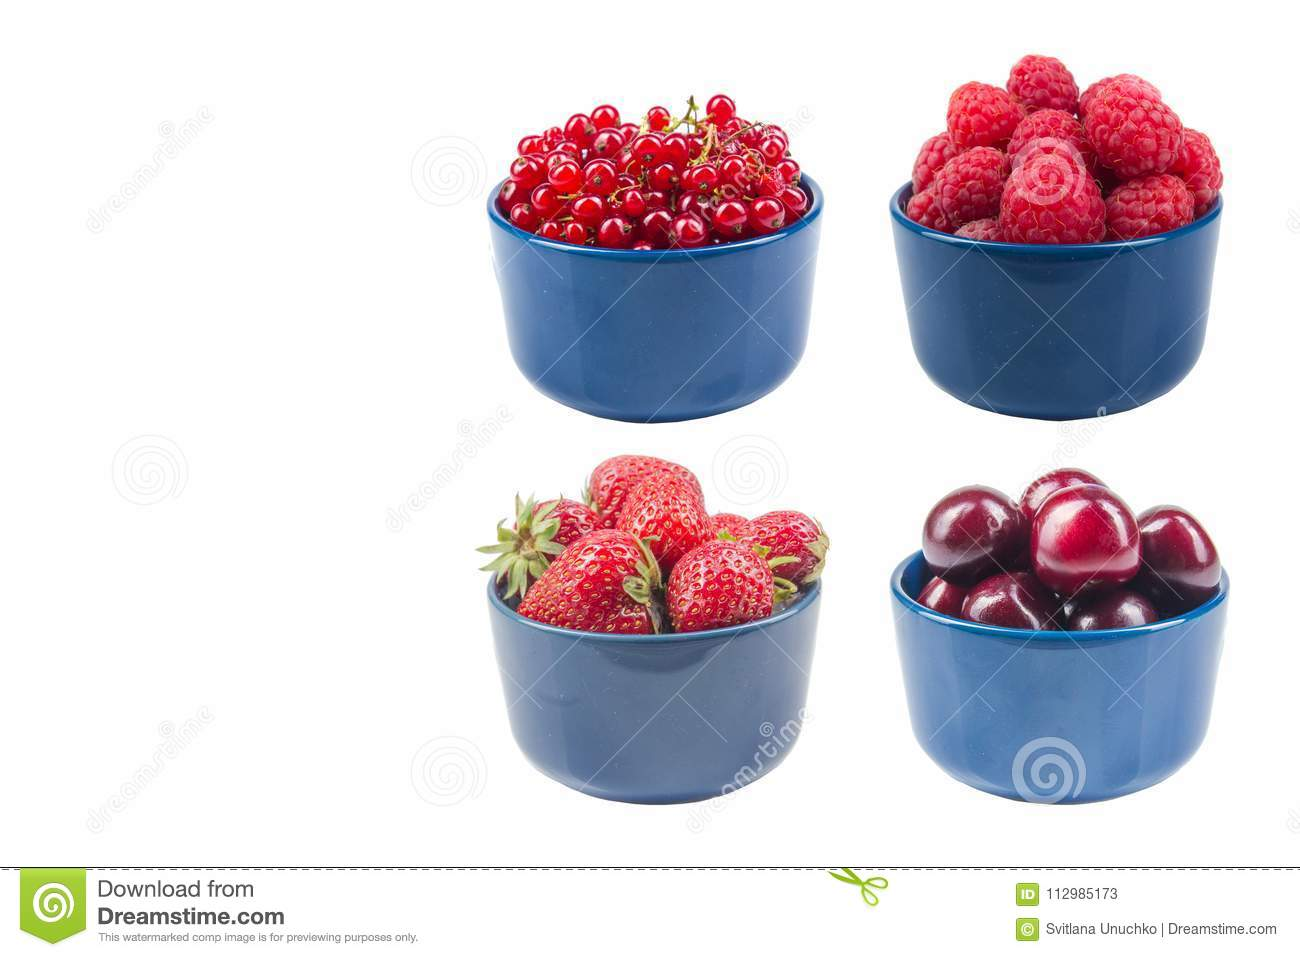 Berries on Isolated white background, bowl of Cherry, currant, raspberries, strawberries